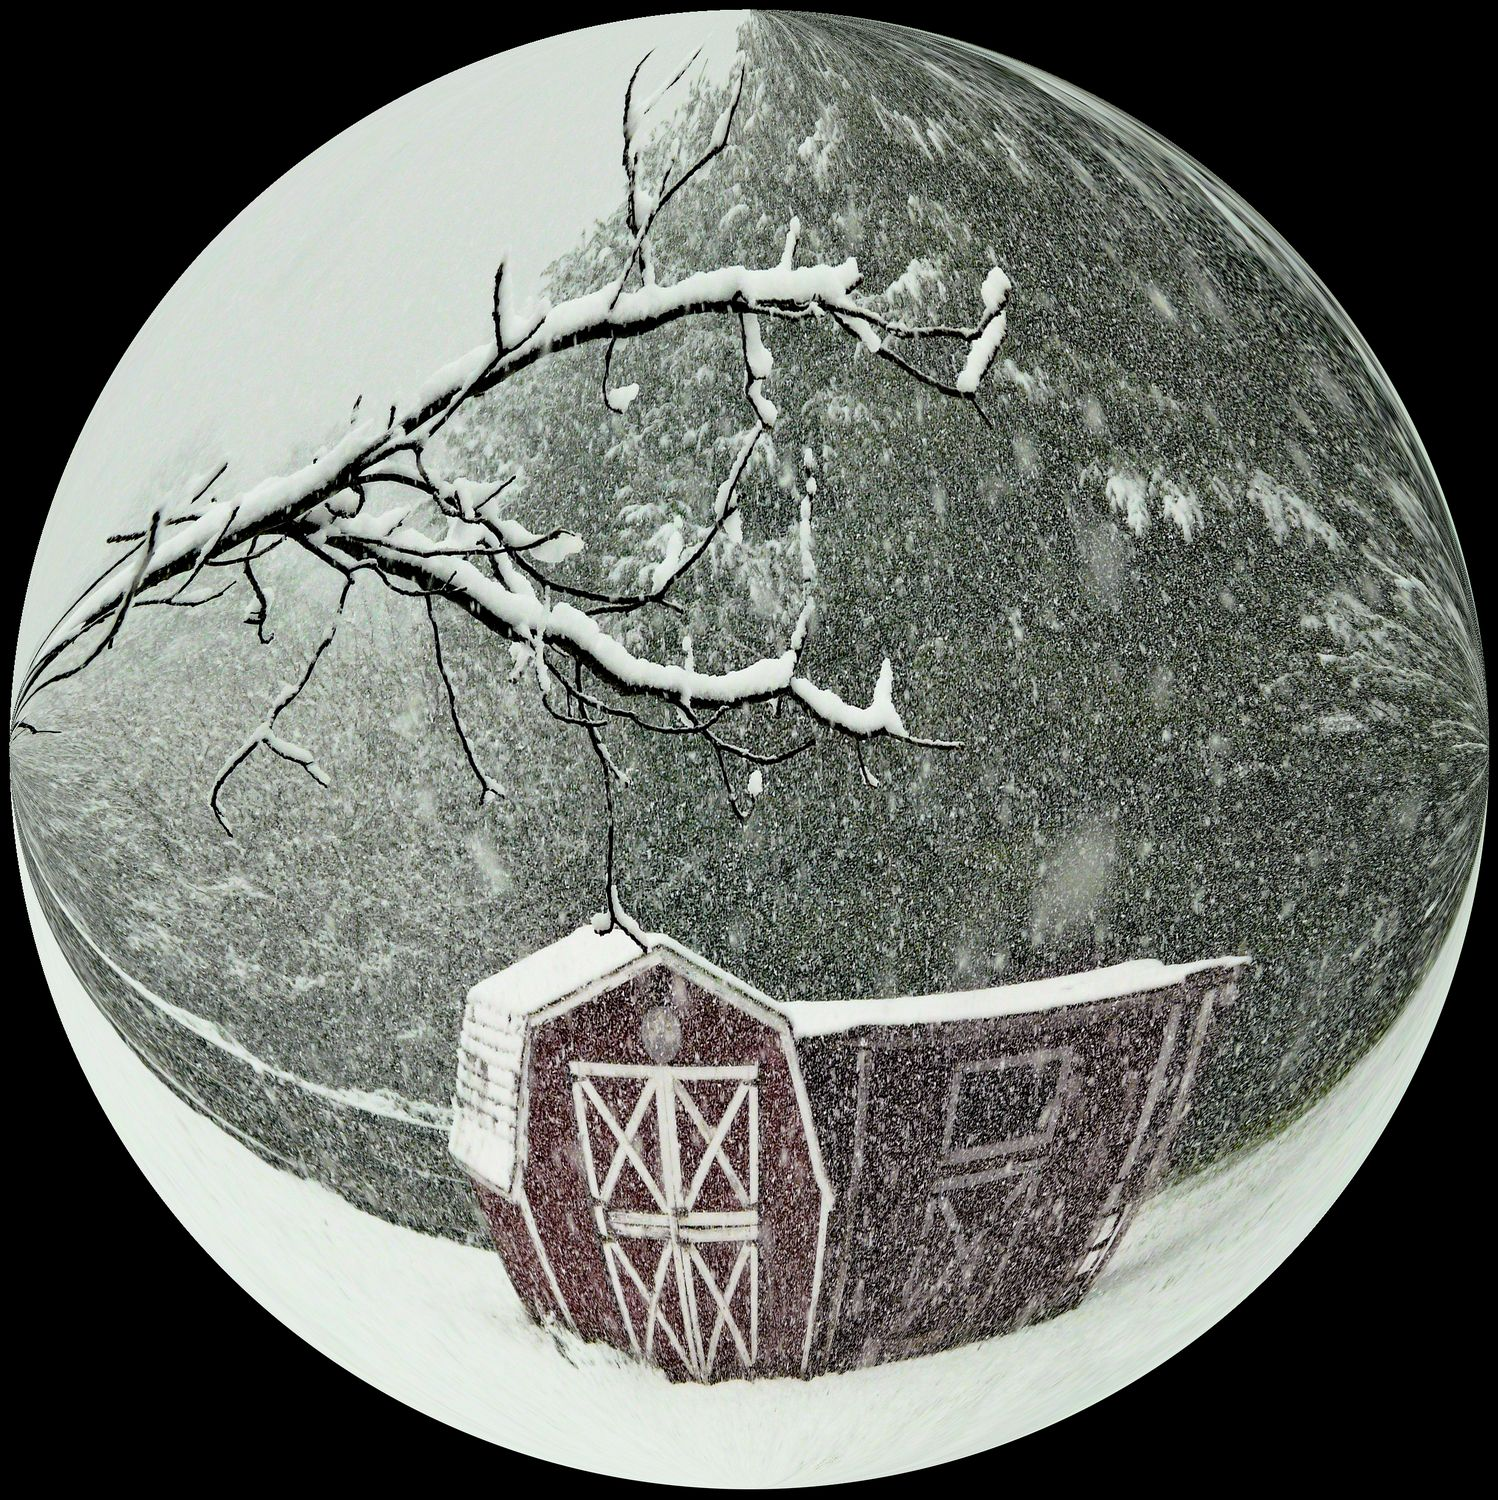 - Snow globe in a bubble -  Tony Karp's Bubble Pictures - From 1959 to 2013 - Tony Karp, design, art, photography, techno-impressionist, techno-impressionism, aerial photography , drone , drones , dji , mavic pro , video , 3D printing - Books -